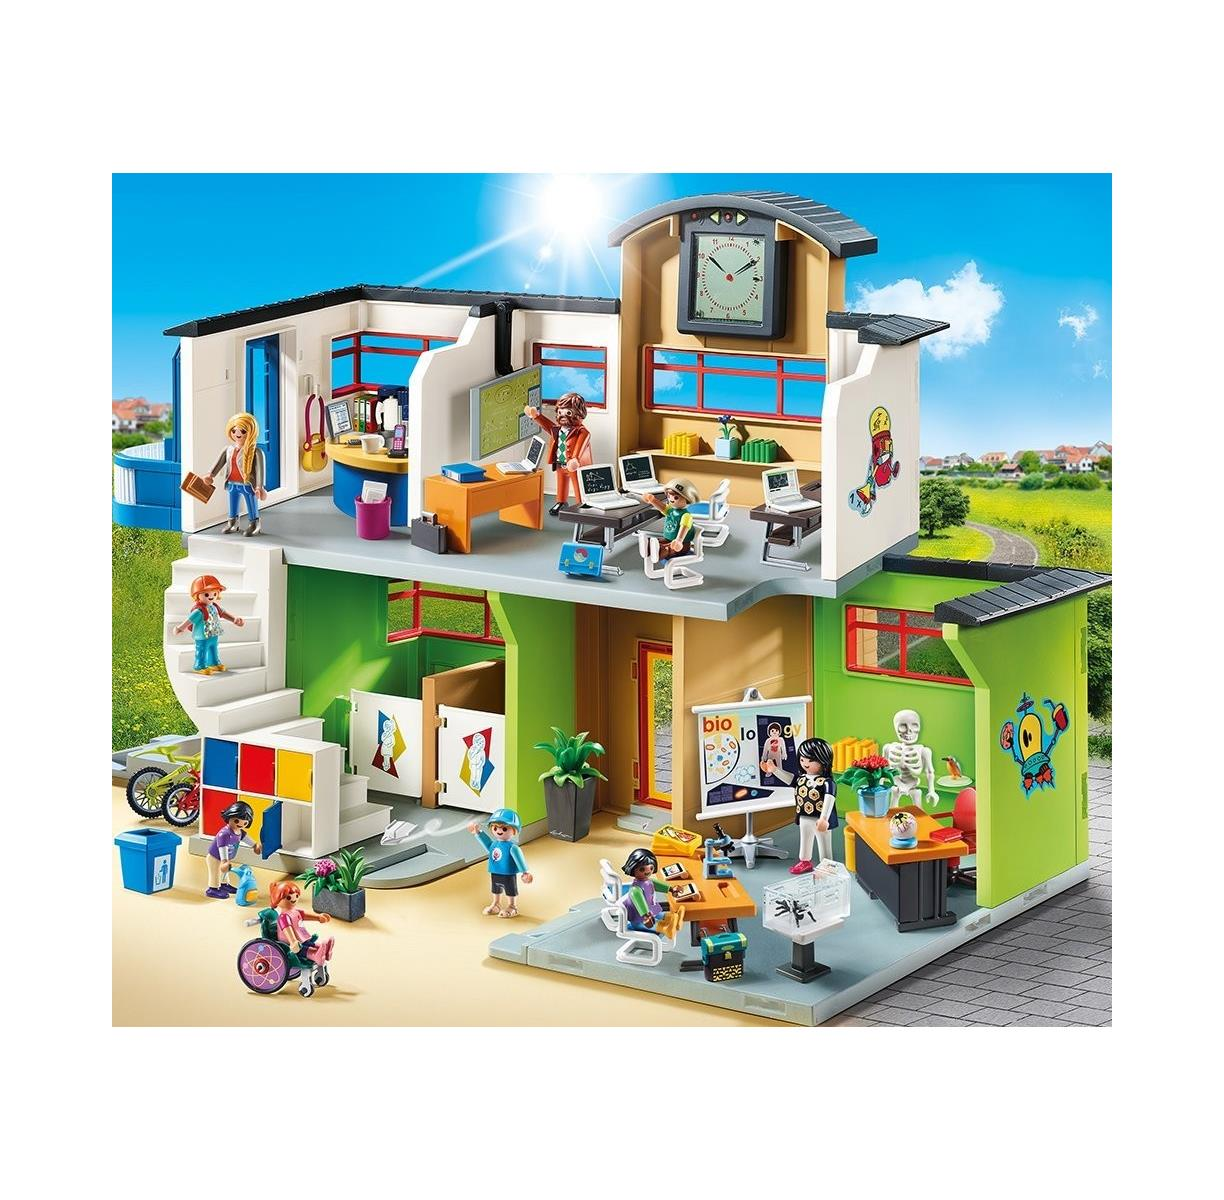 playmobil 9453 city life gro e schule mit einrichtung. Black Bedroom Furniture Sets. Home Design Ideas